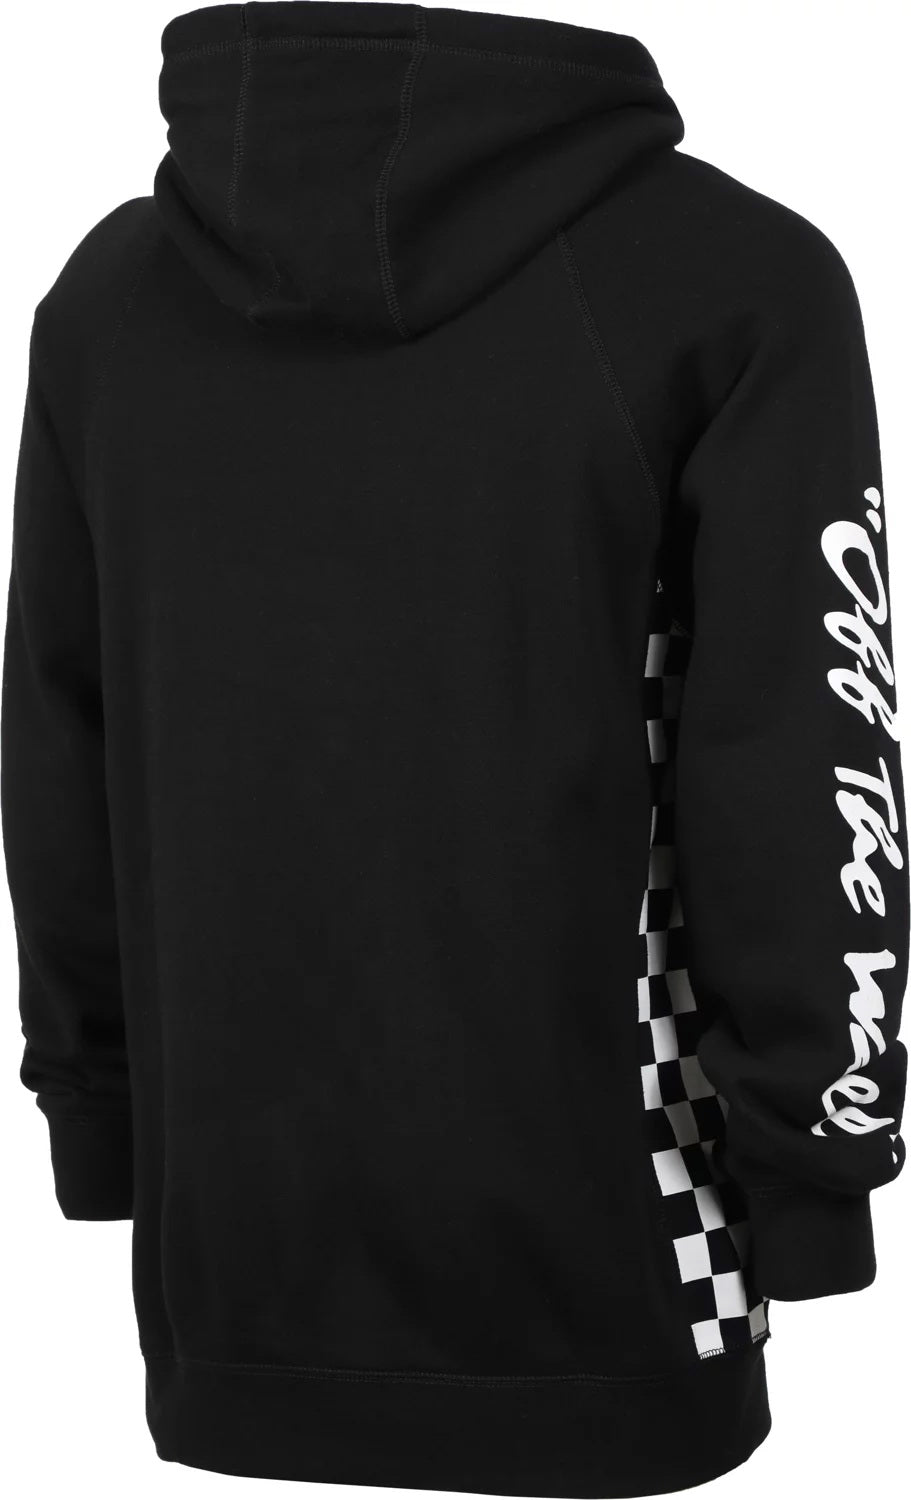 Vans Off the Wall Hooded Sweatshirt Mens VN0A4579BLK